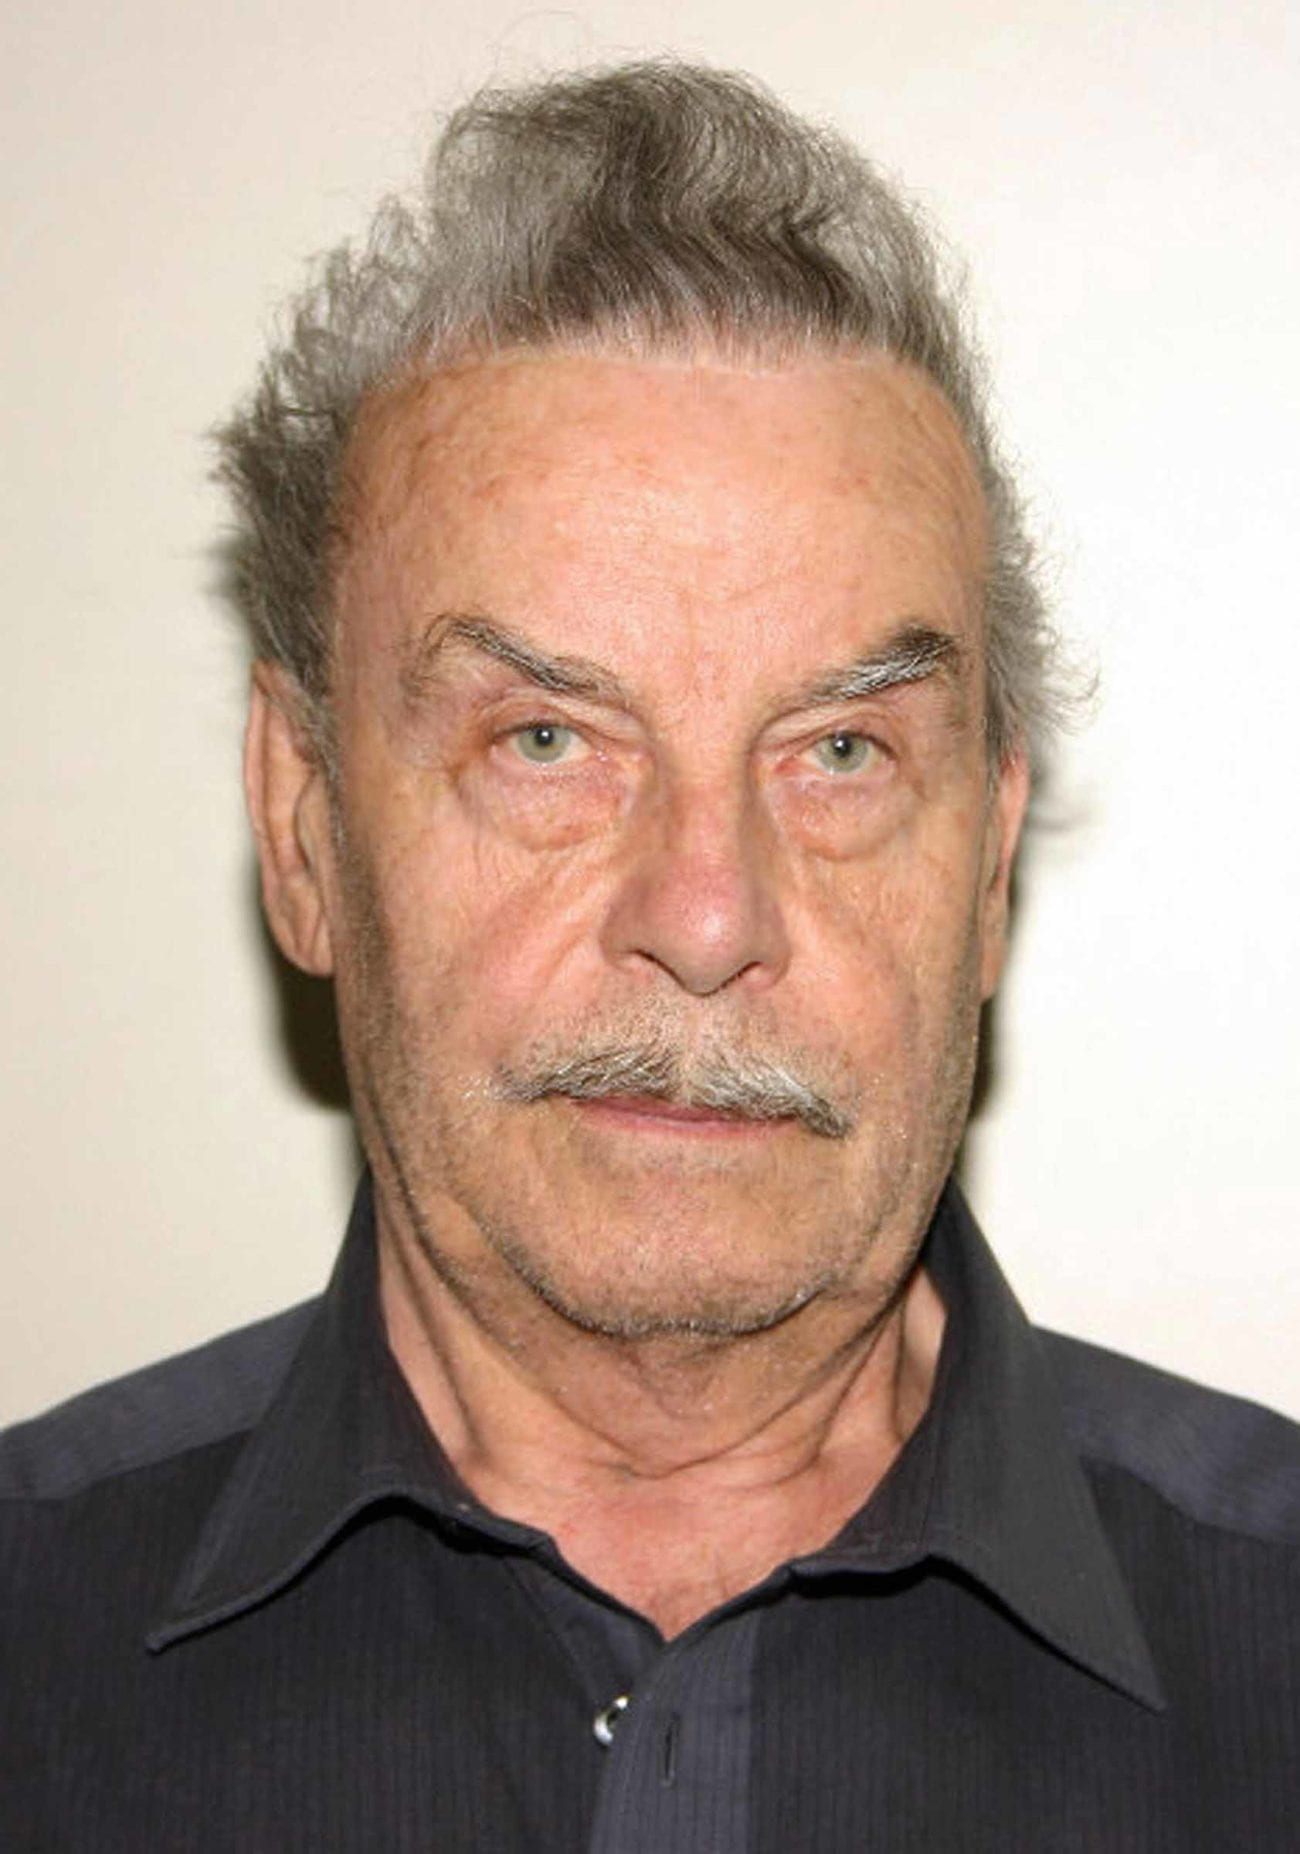 You never know what goes on at the homes of your neighbors. If you don't know about the case of Josef Fritzl, here's what you need to know.